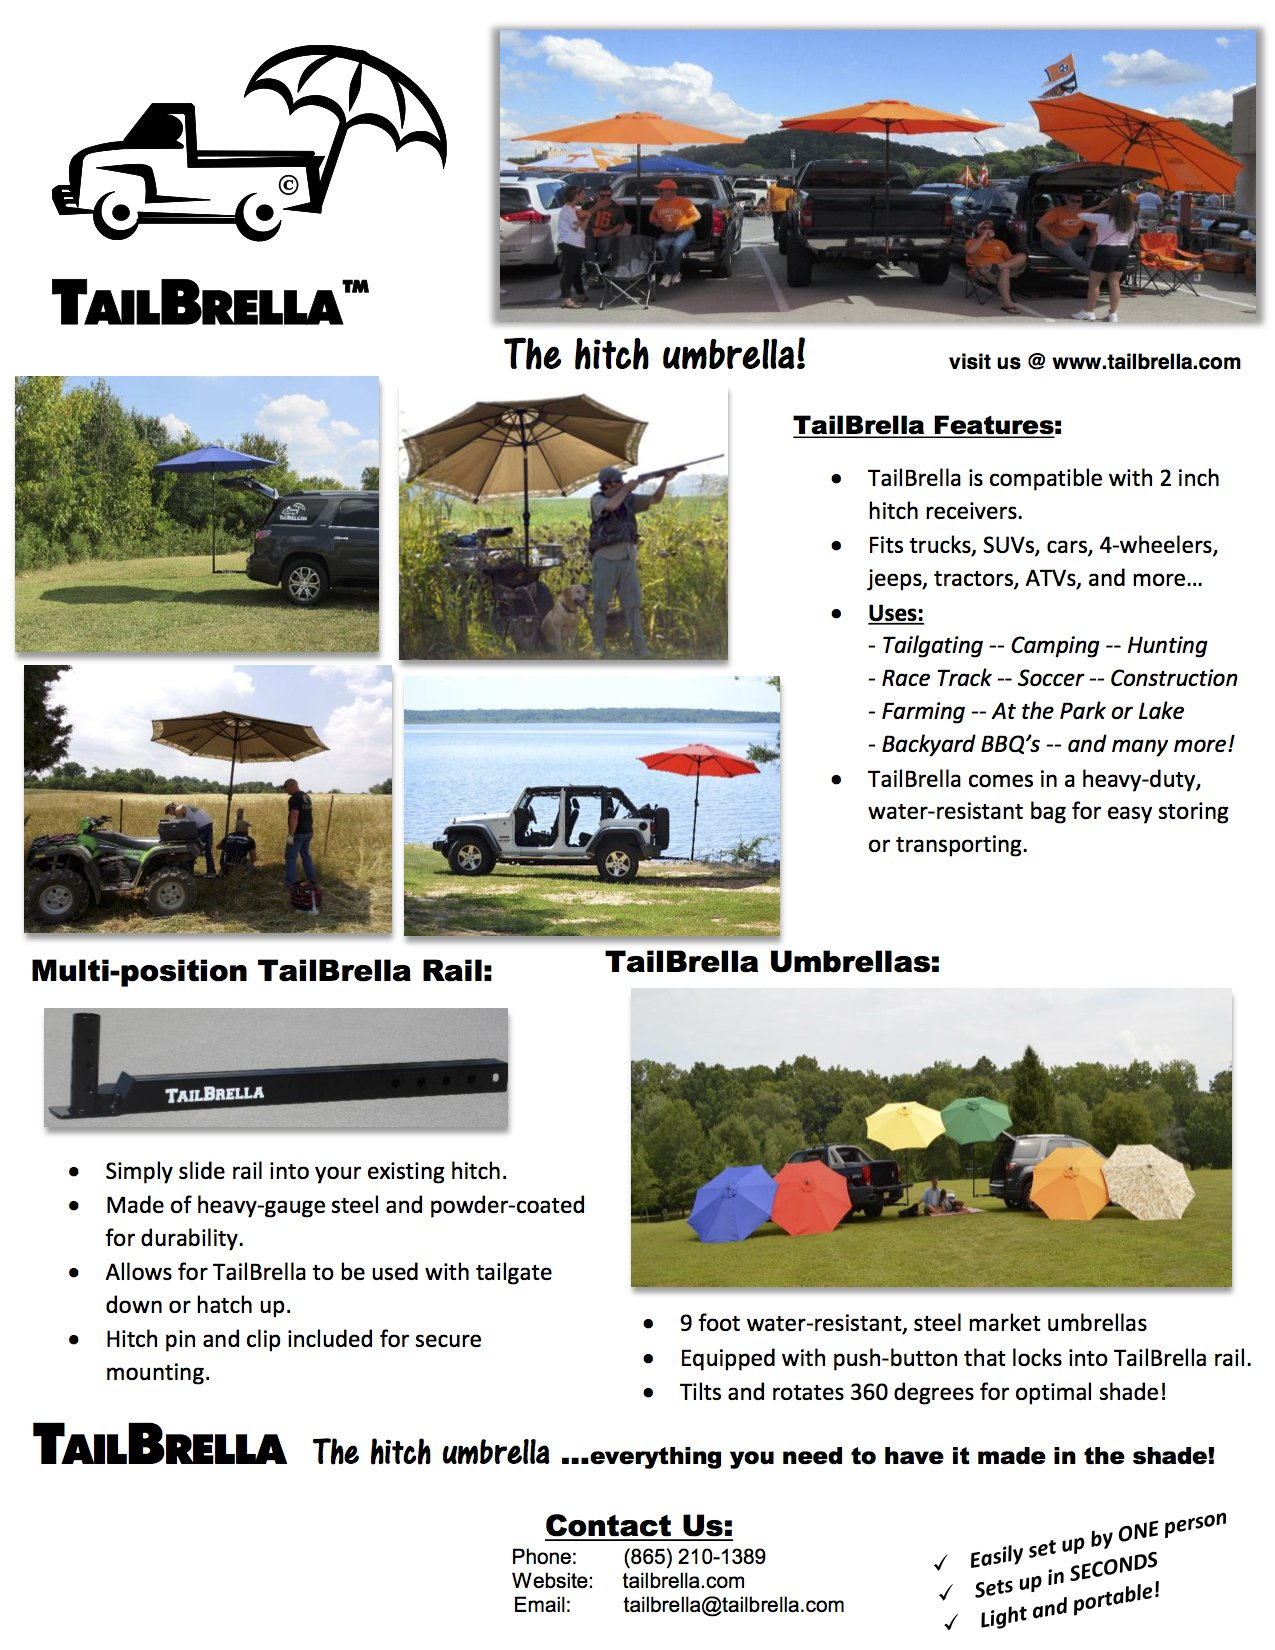 Tailbrella Red Tailgate Hitch Umbrella Canopy for Truck SUV Tailgater. 9FT Large Water-Resistant Tailgating Tents for Outdoor Camping, Beach, Travel, Hunting. EZ Pop Up Umbrellas for Shade by Tailbrella